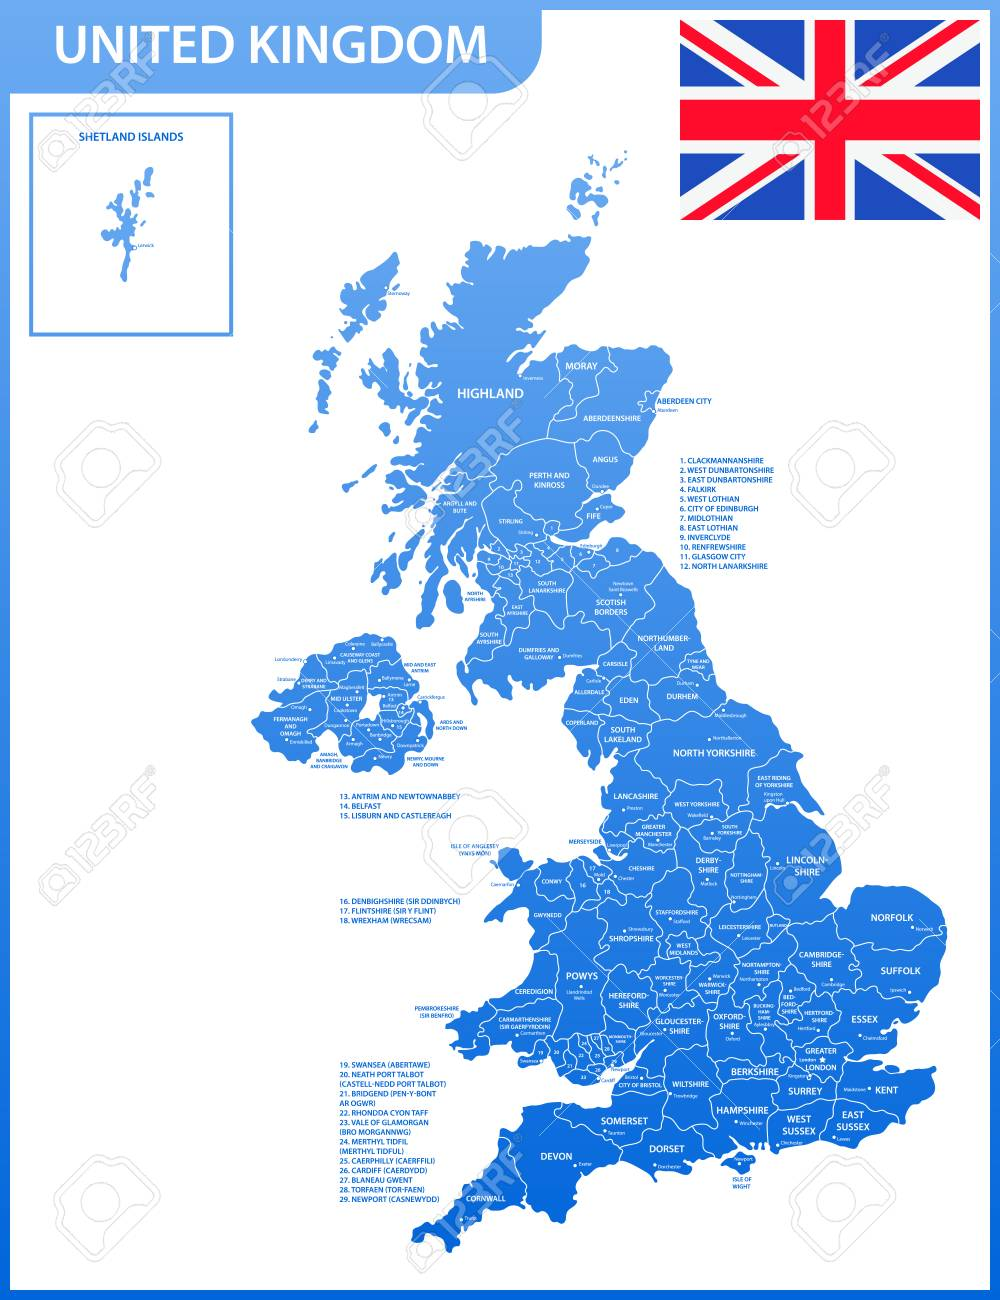 Map Of Uk Detailed.The Detailed Map Of The United Kingdom With Regions Or States